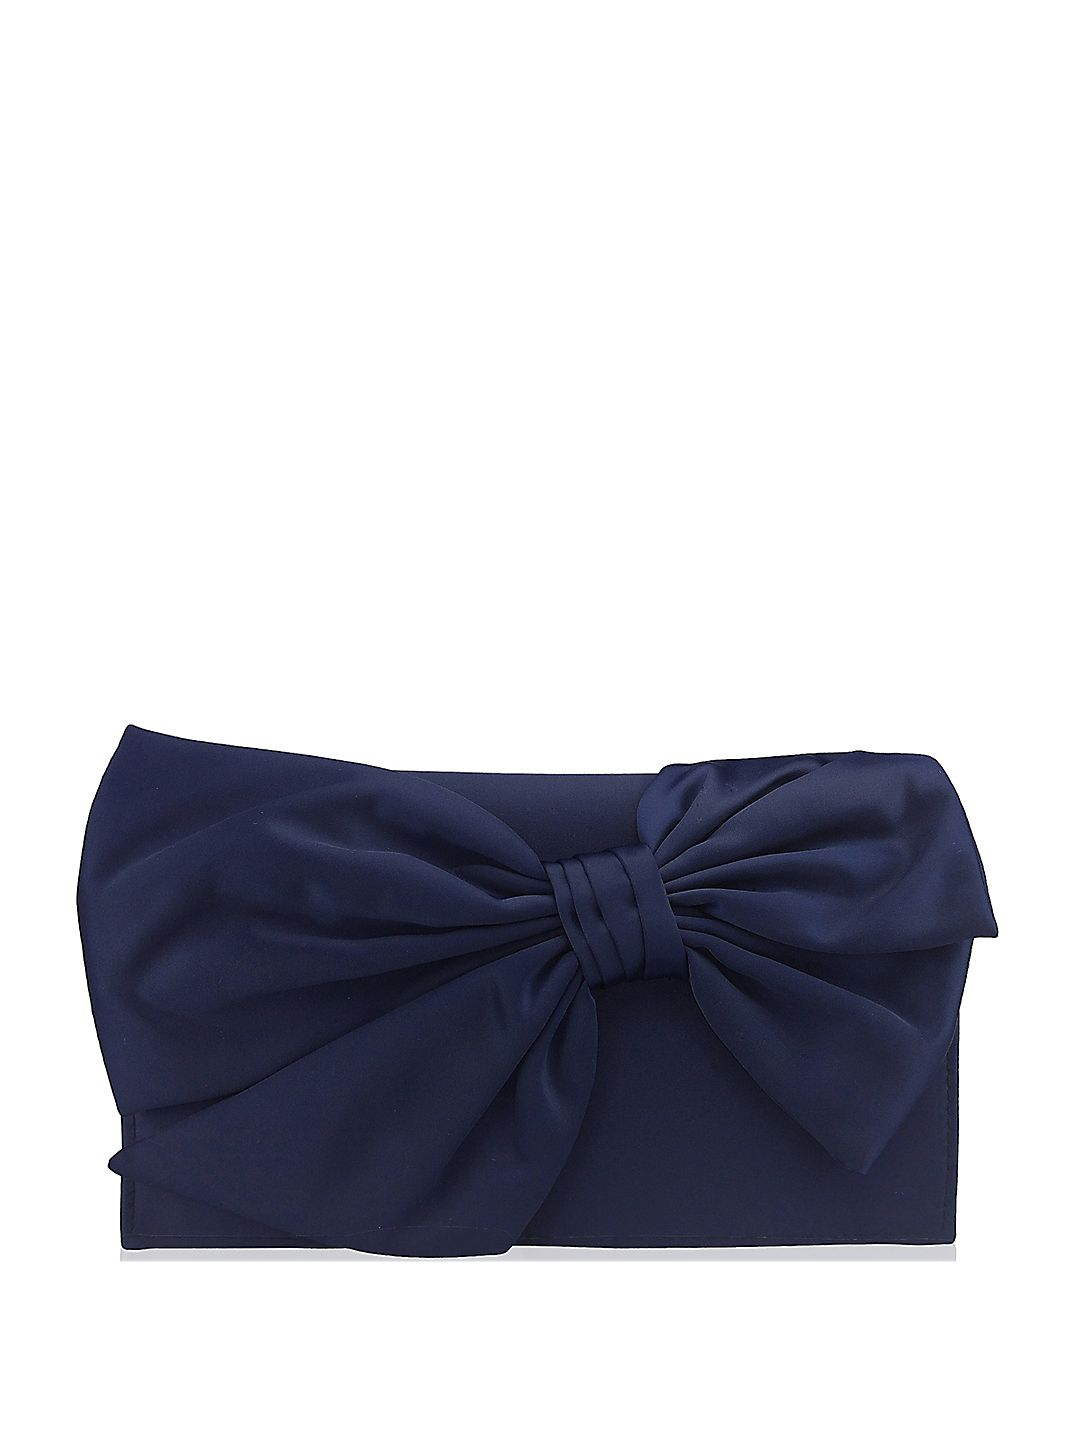 Beaded Strap Bow Clutch